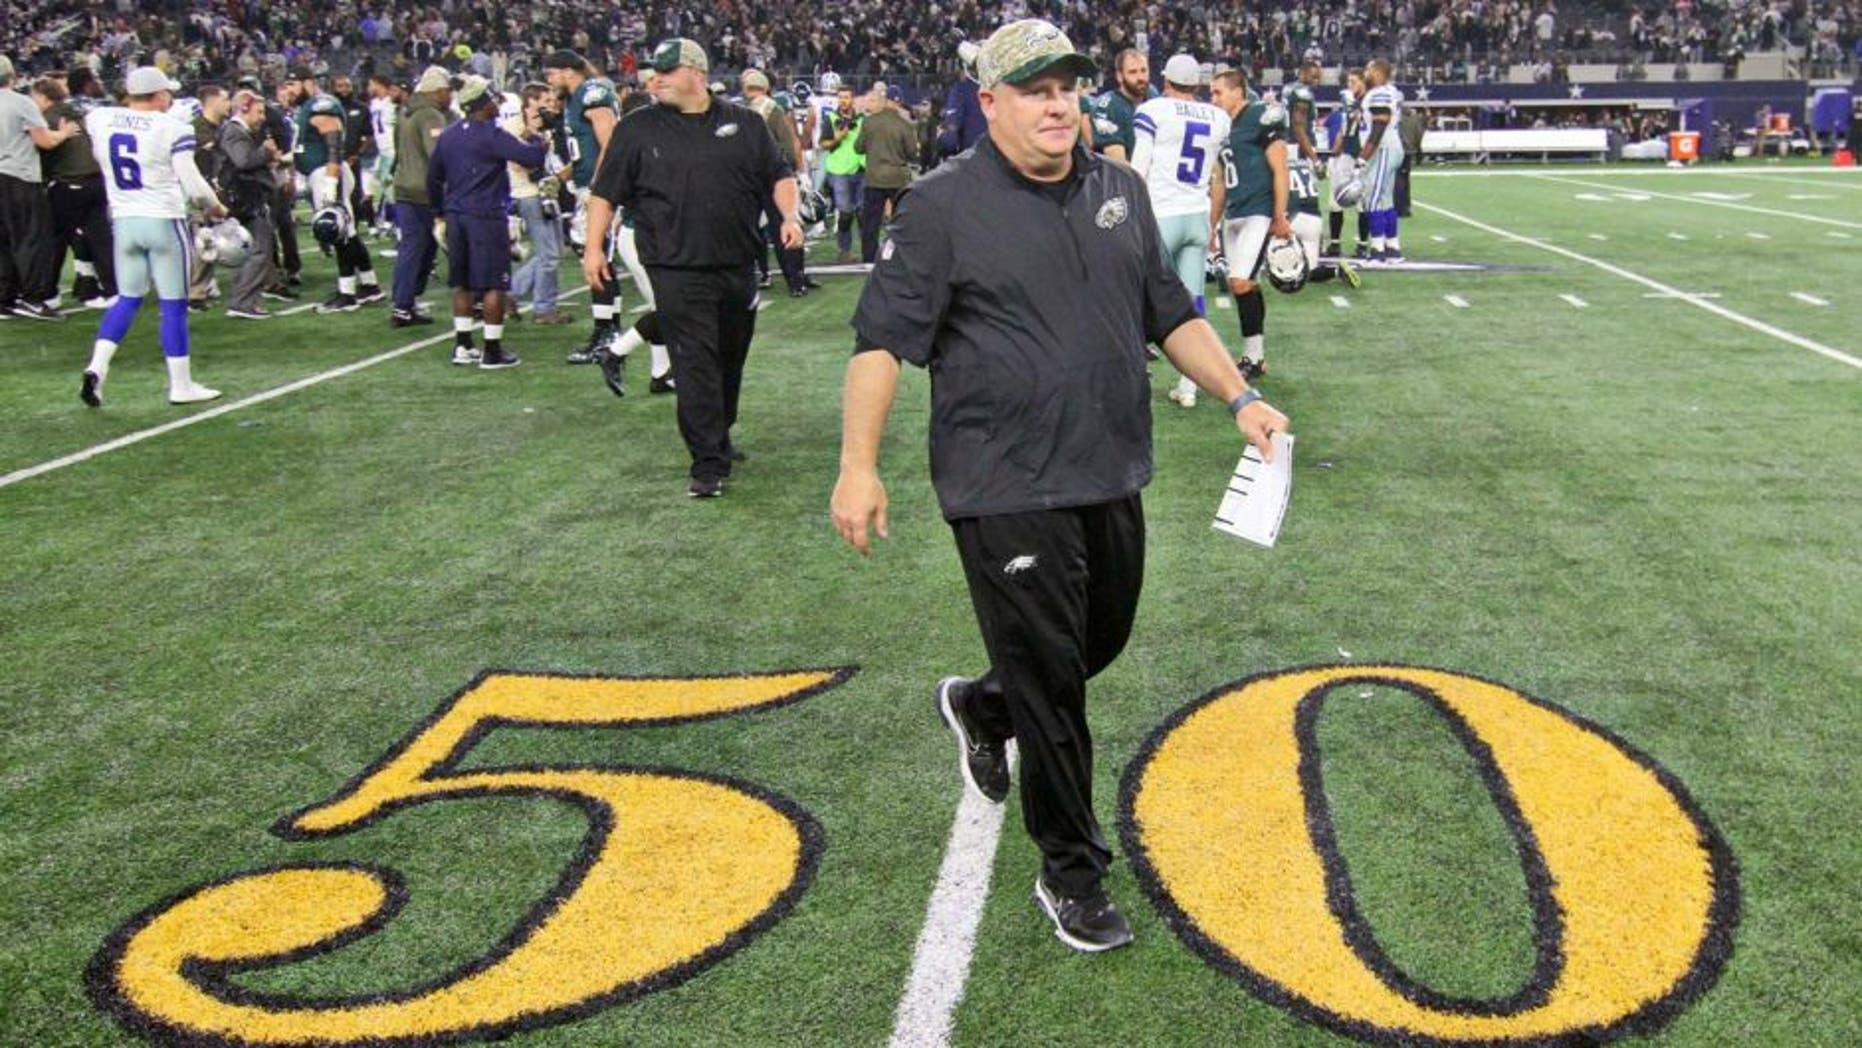 Nov 8, 2015; Arlington, TX, USA; Philadelphia Eagles head coach Chip Kelly leaves the field following a game against the Dallas Cowboys at AT&T Stadium. Eagles won 33-27 in overtime. Mandatory Credit: Ray Carlin-USA TODAY Sports